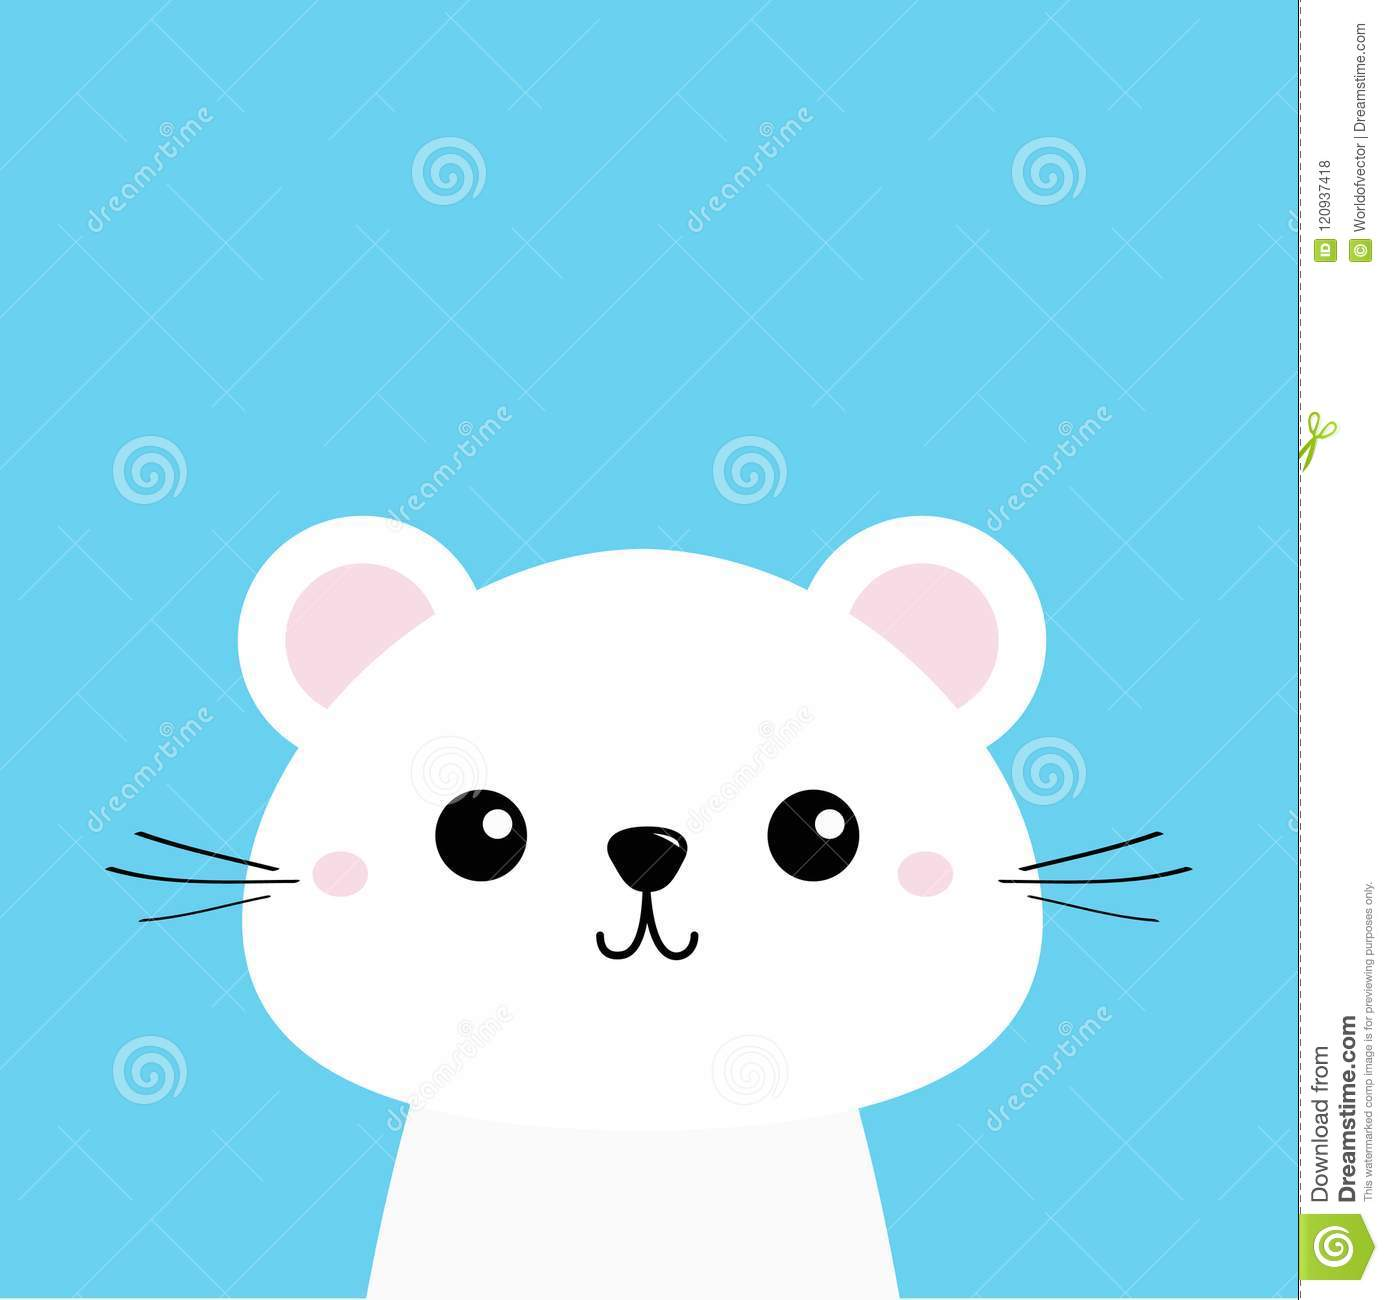 White Animal Cute Kawaii Cartoon Character Funny Head Baby Face Greeting Card Template